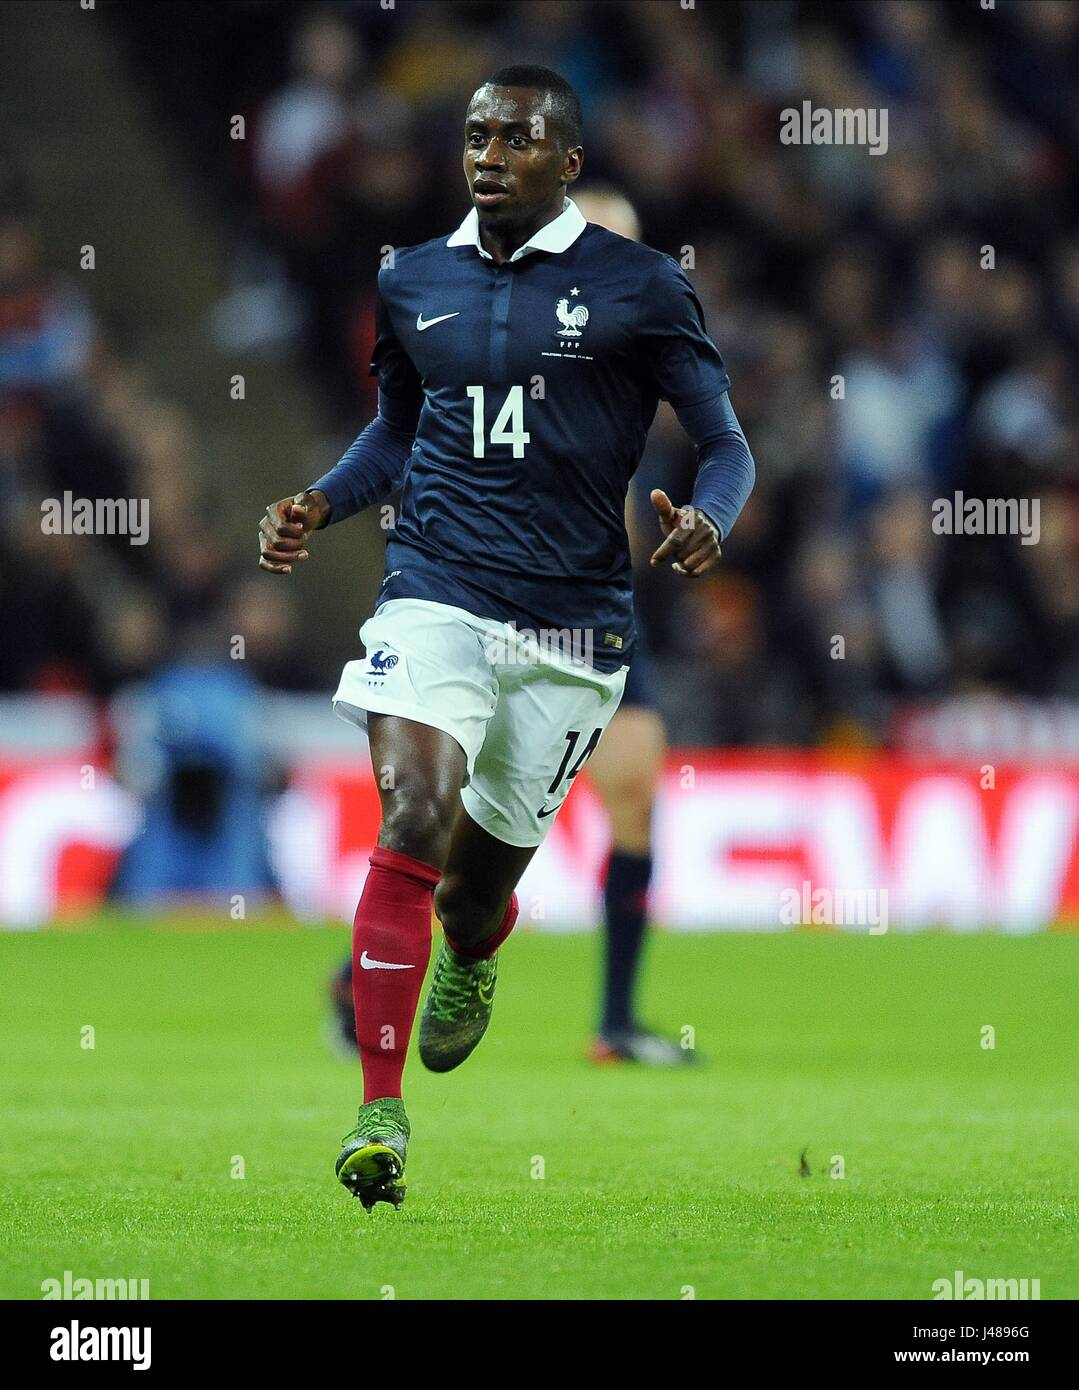 BLAISE MATUIDI OF FRANCE ENGLAND V FRANCE WEMBLEY STADIUM LONDON